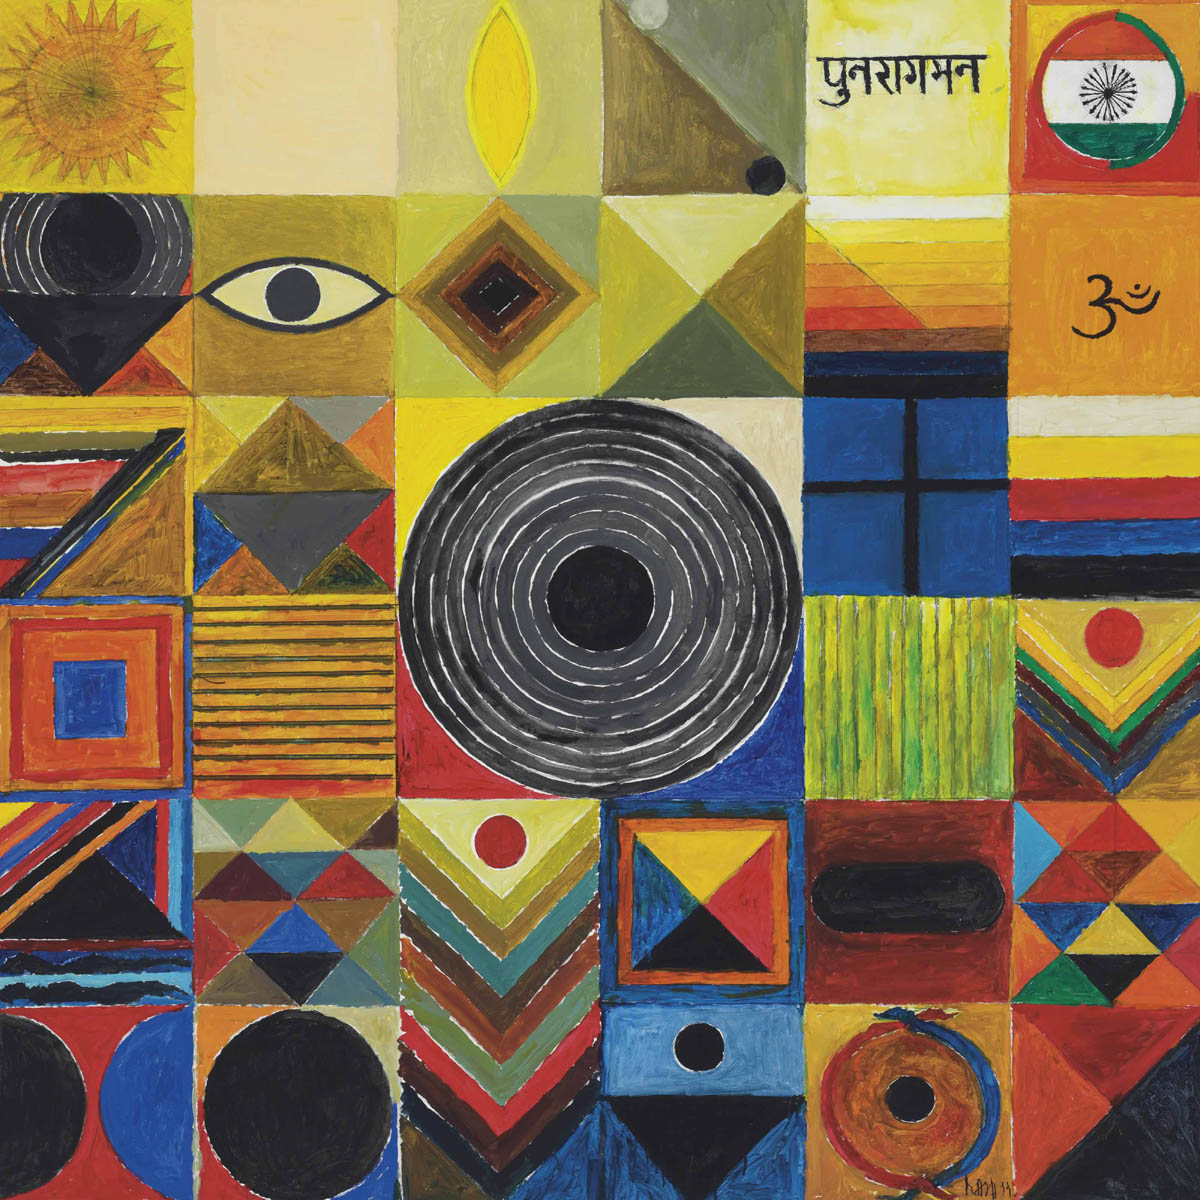 expensive painting punaraagman by famous indian artist syed haider raza